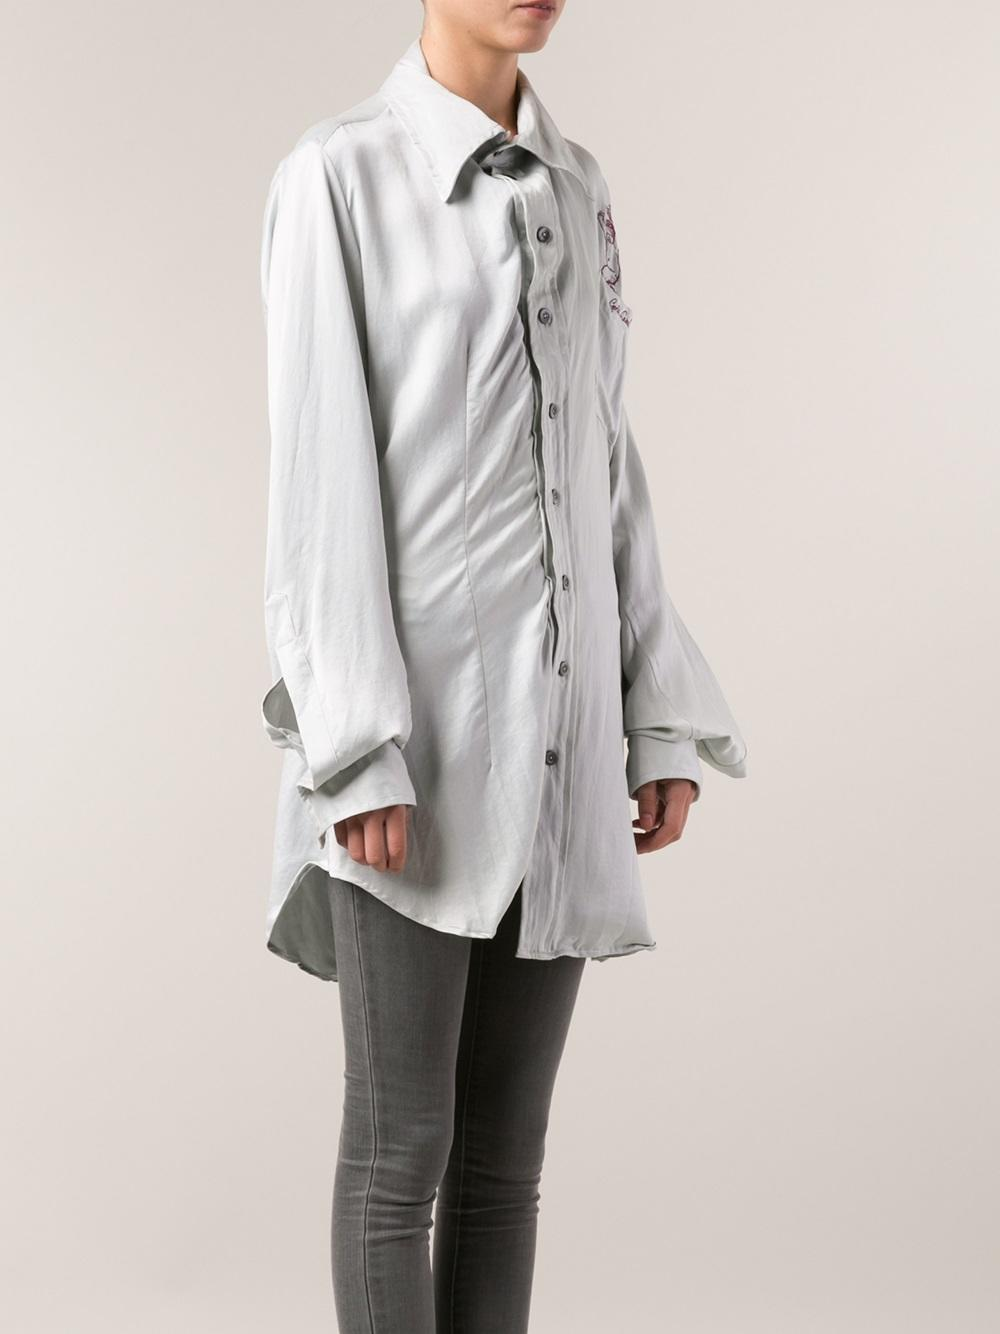 Collared Dress Shirts For Women